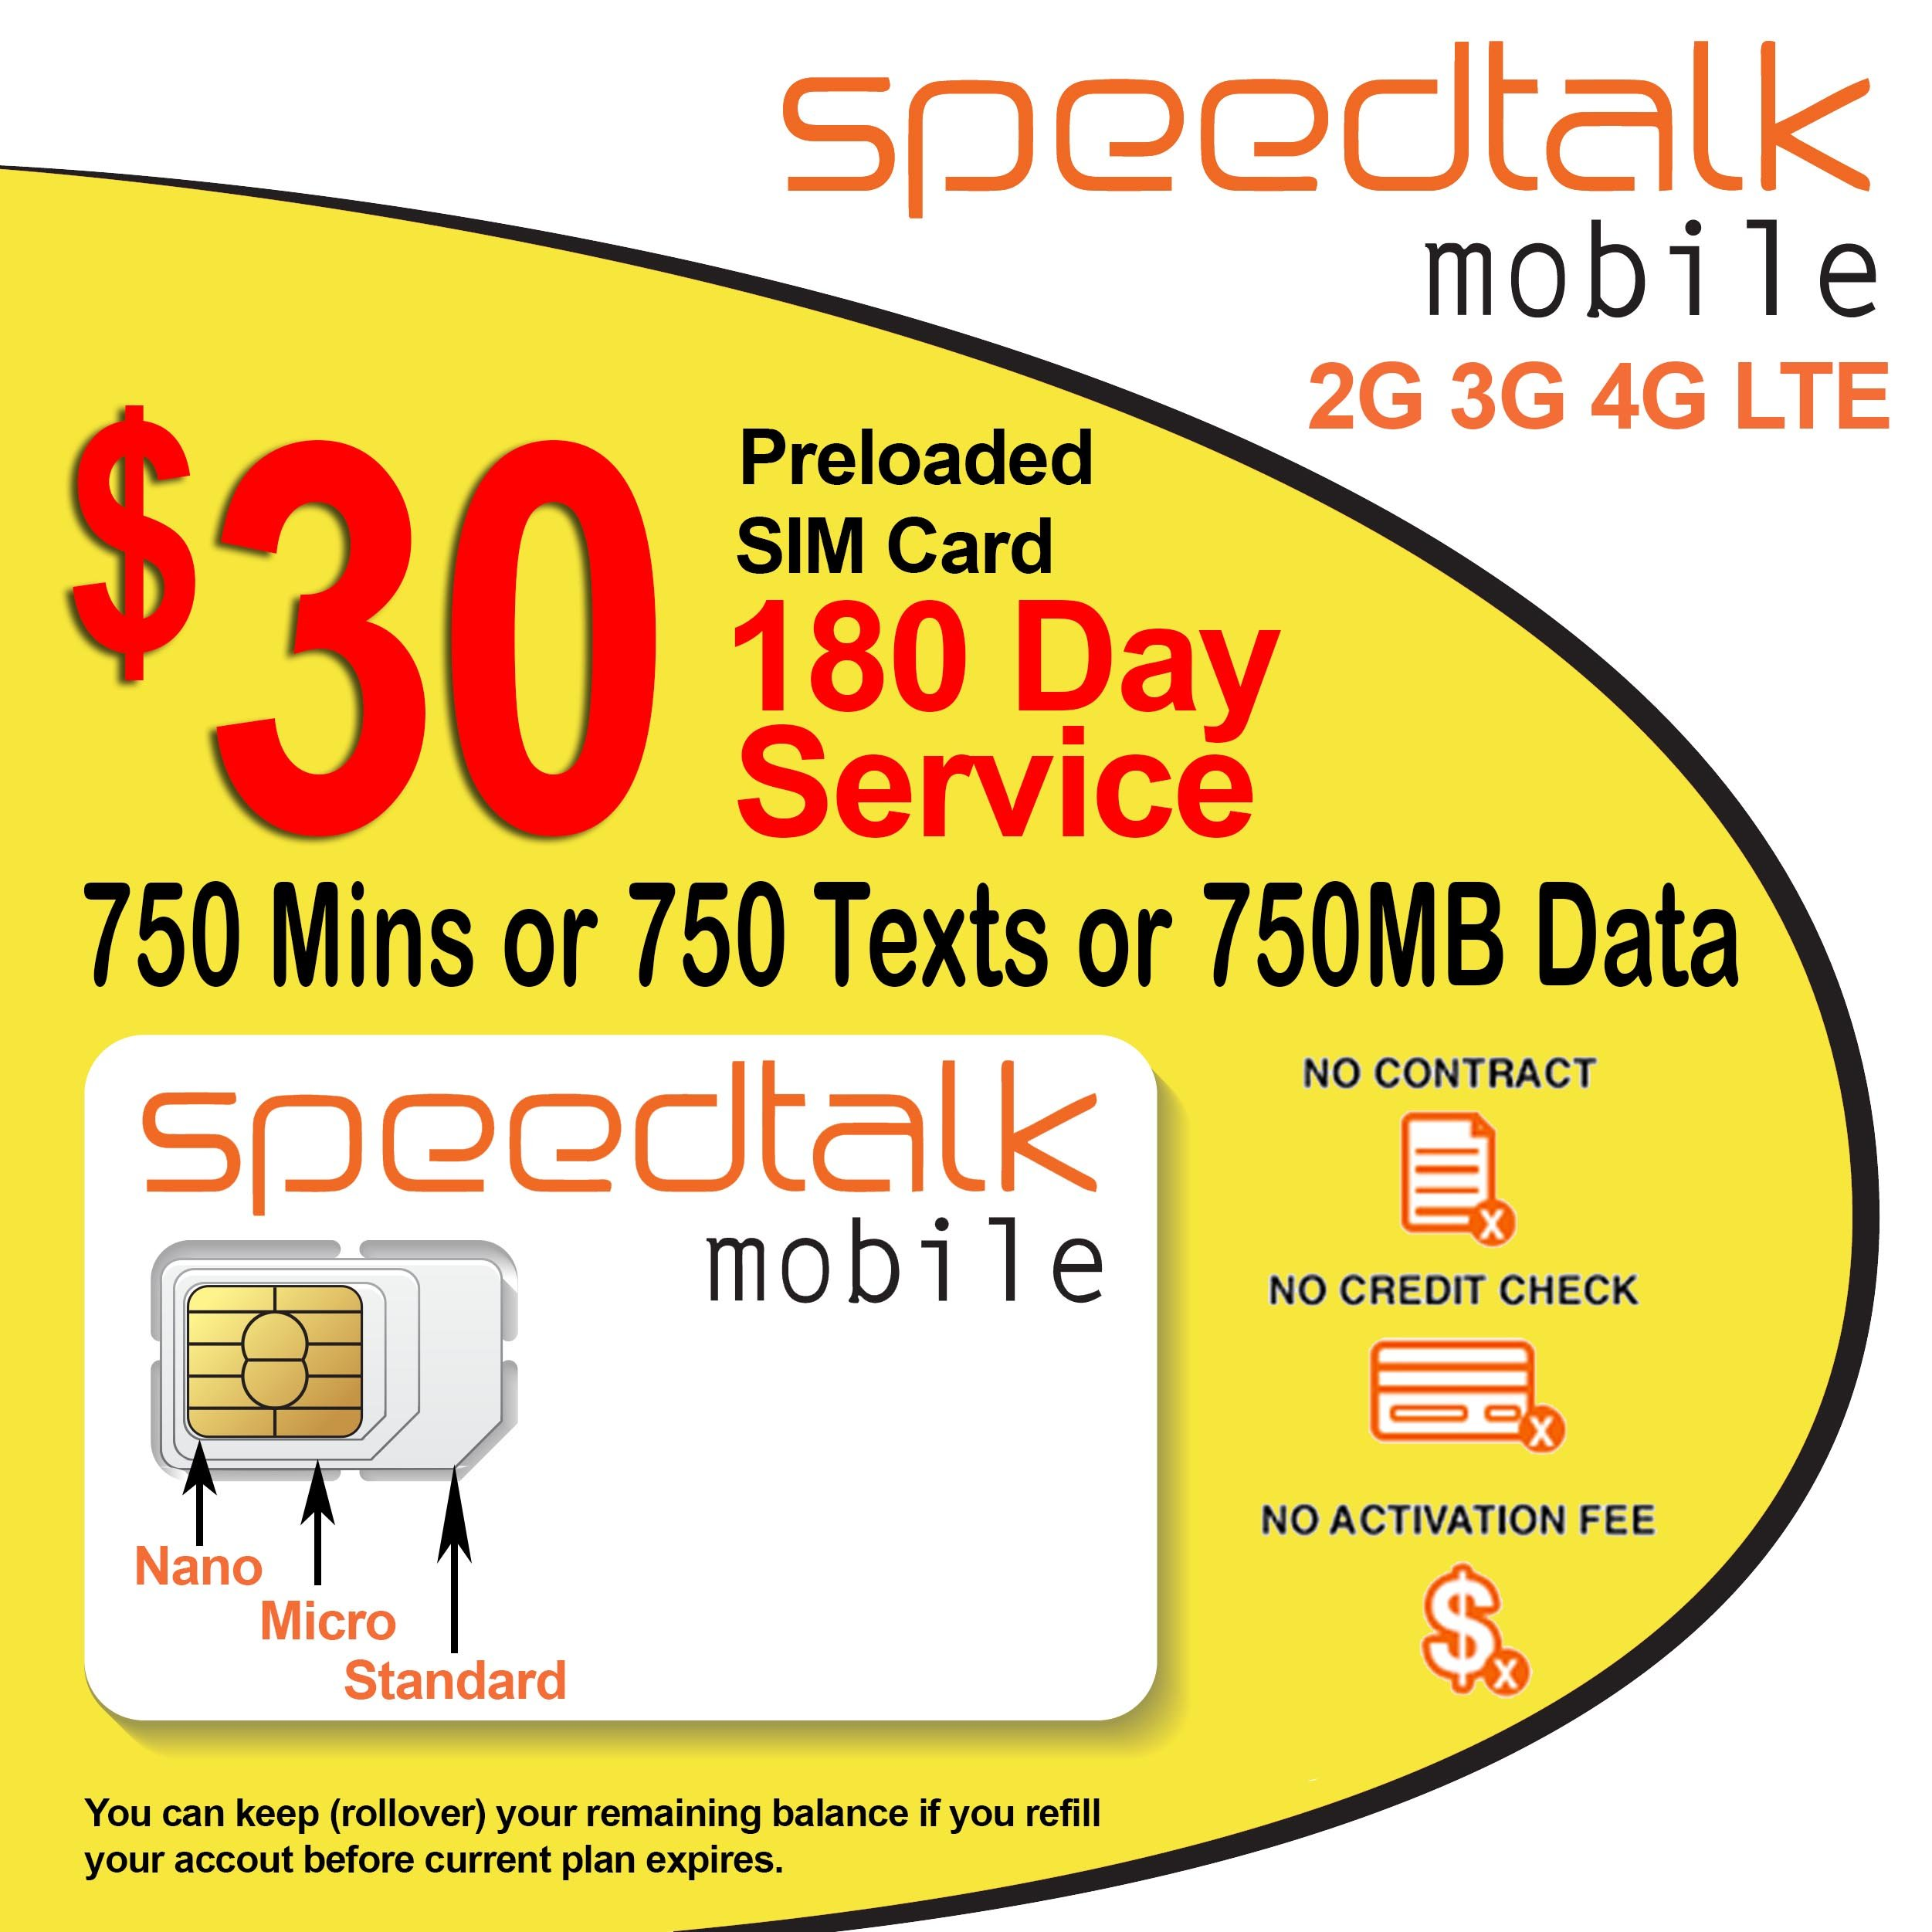 Preloaded $30 Prepaid GSM SIM Card Rollover 750 Minutes Talk Text Data 180-Day Wireless Service by SpeedTalk Mobile